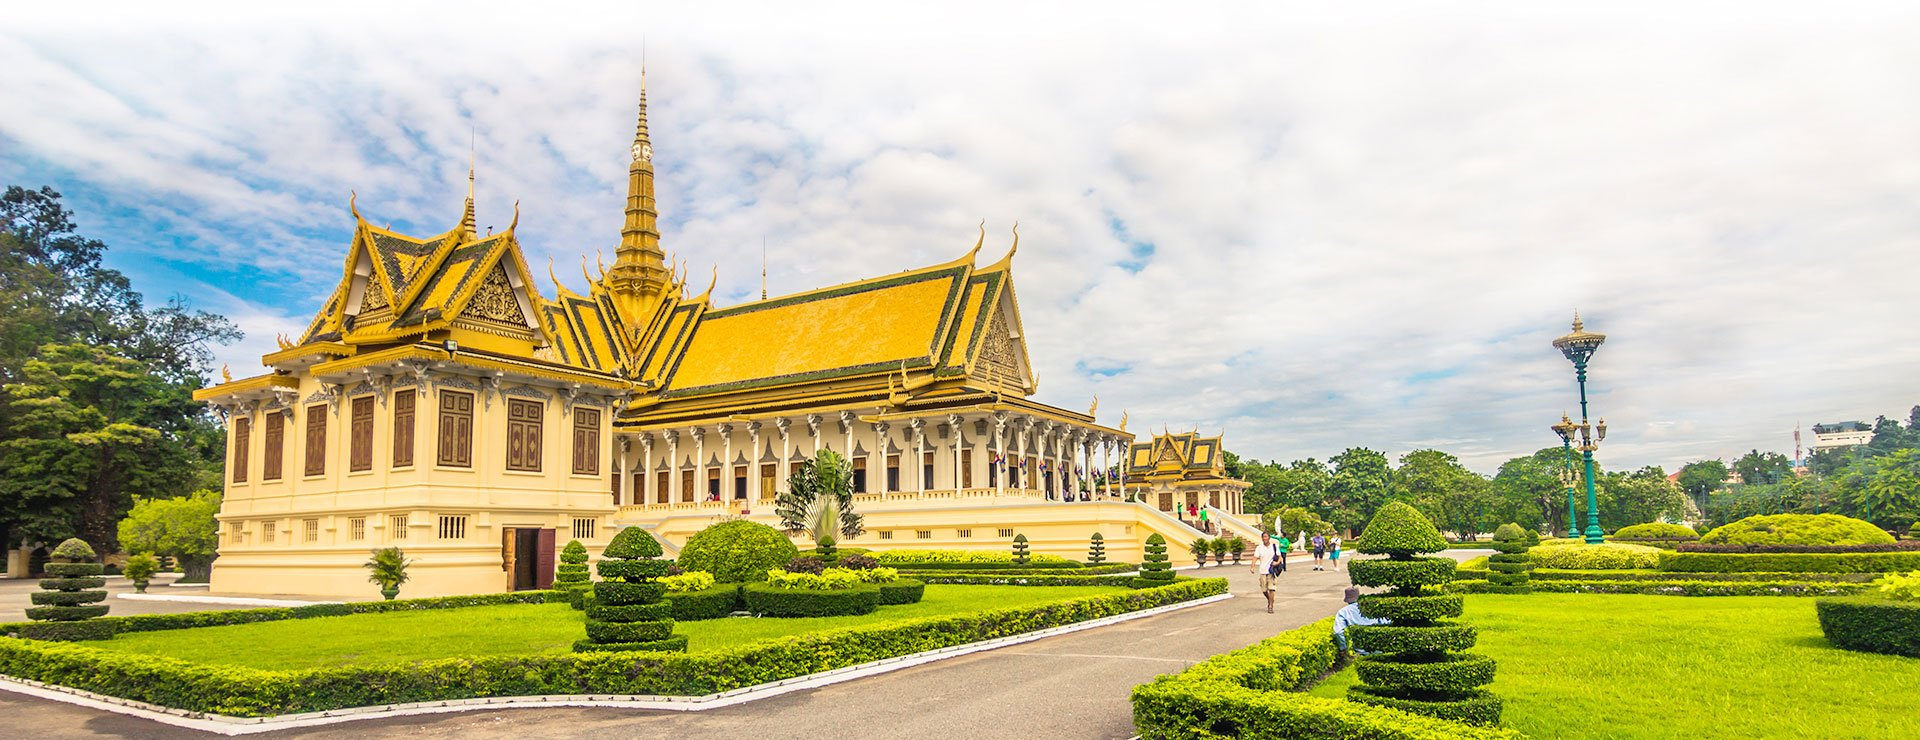 What should you do with a day in Phnom Penh, Cambodia?